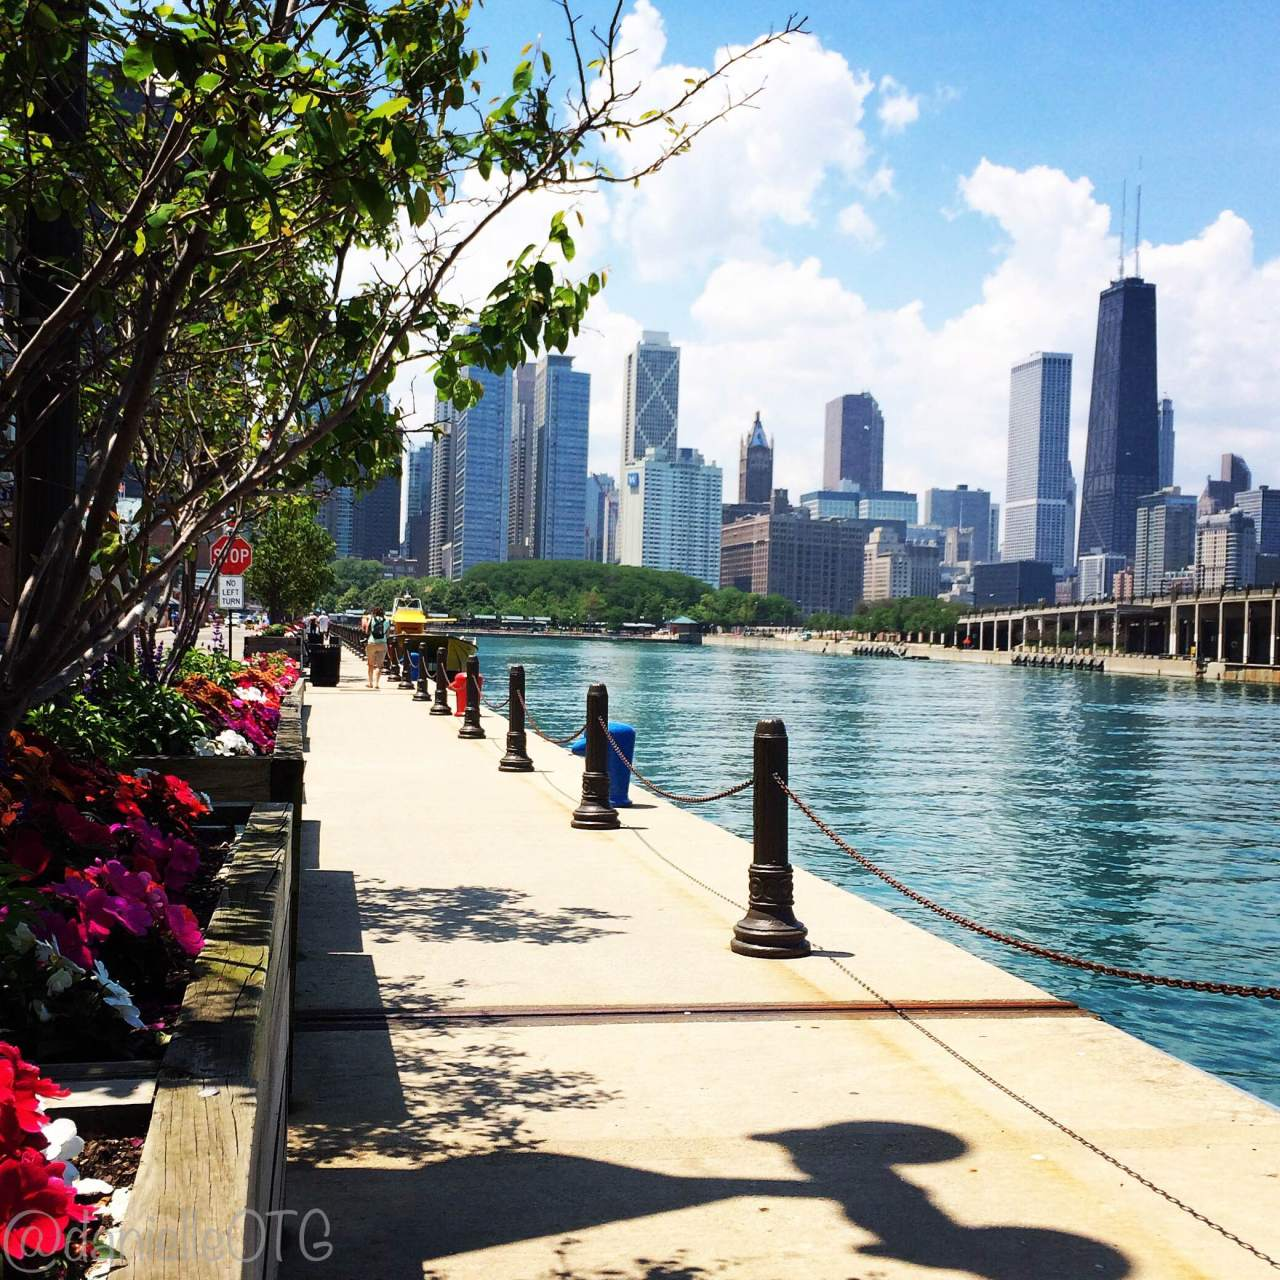 Today's on the Go Photo: Summertime in Chicago